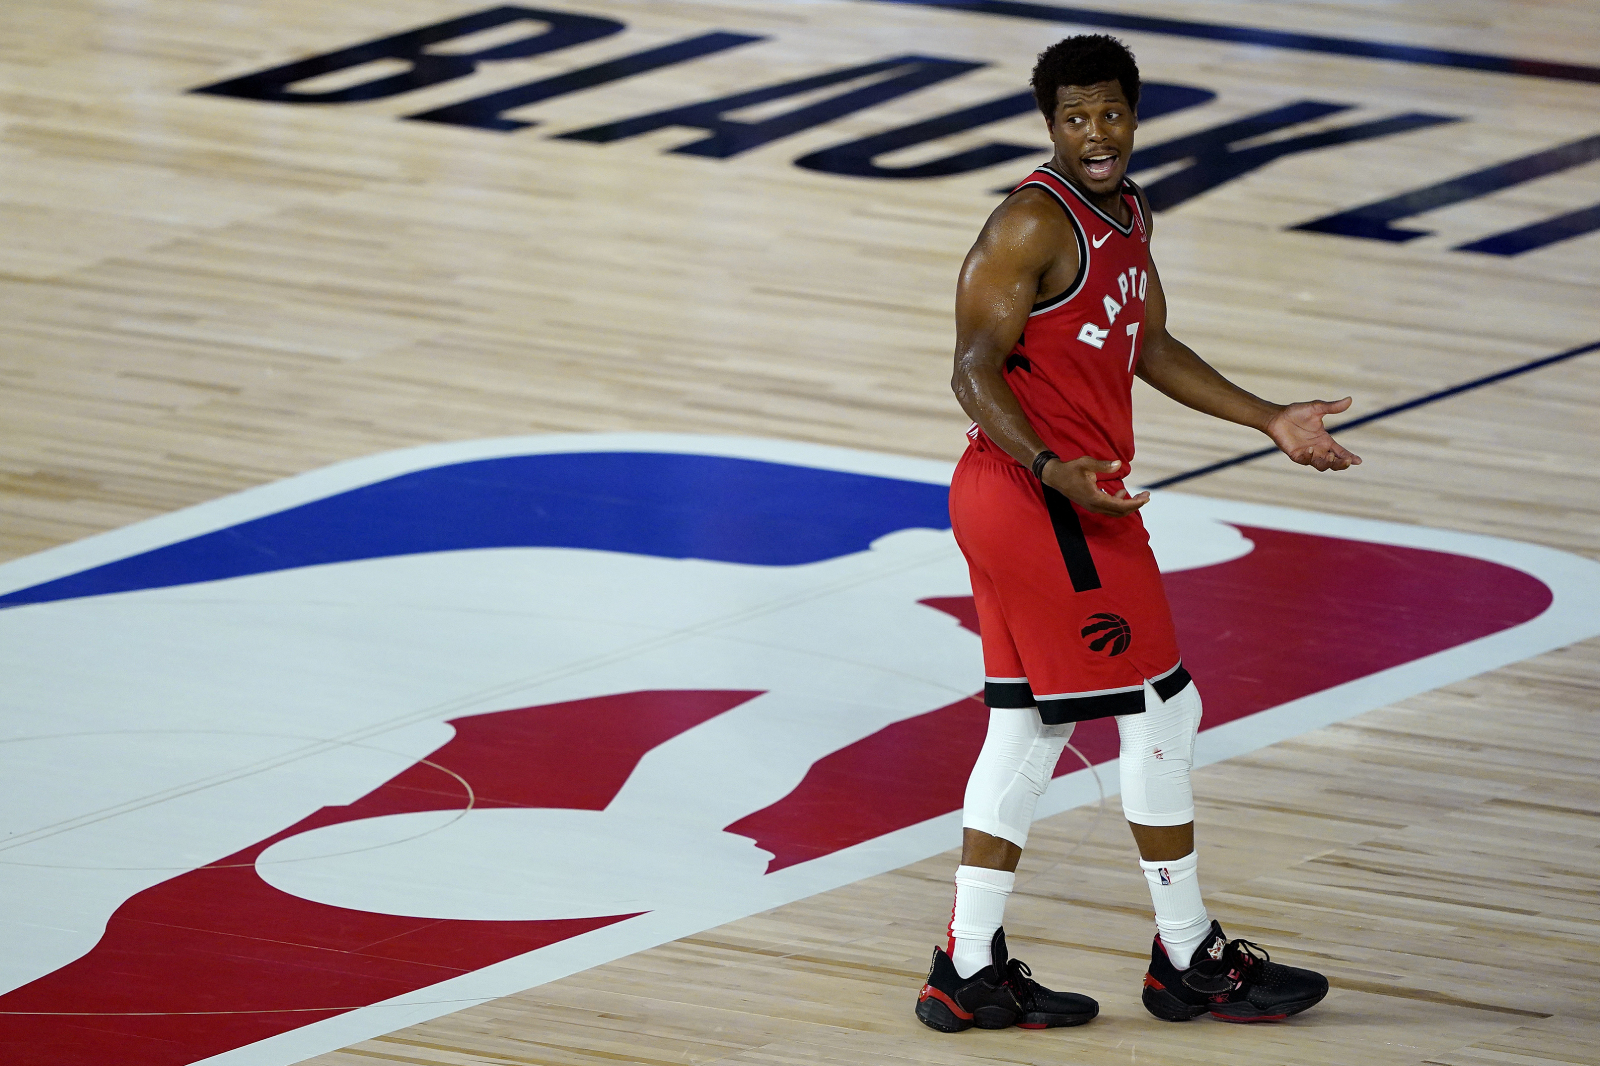 Kyle Lowry has had a lot of success with the Toronto Raptors. Because of his success, he will soon surpass an NBA legend in the record books.